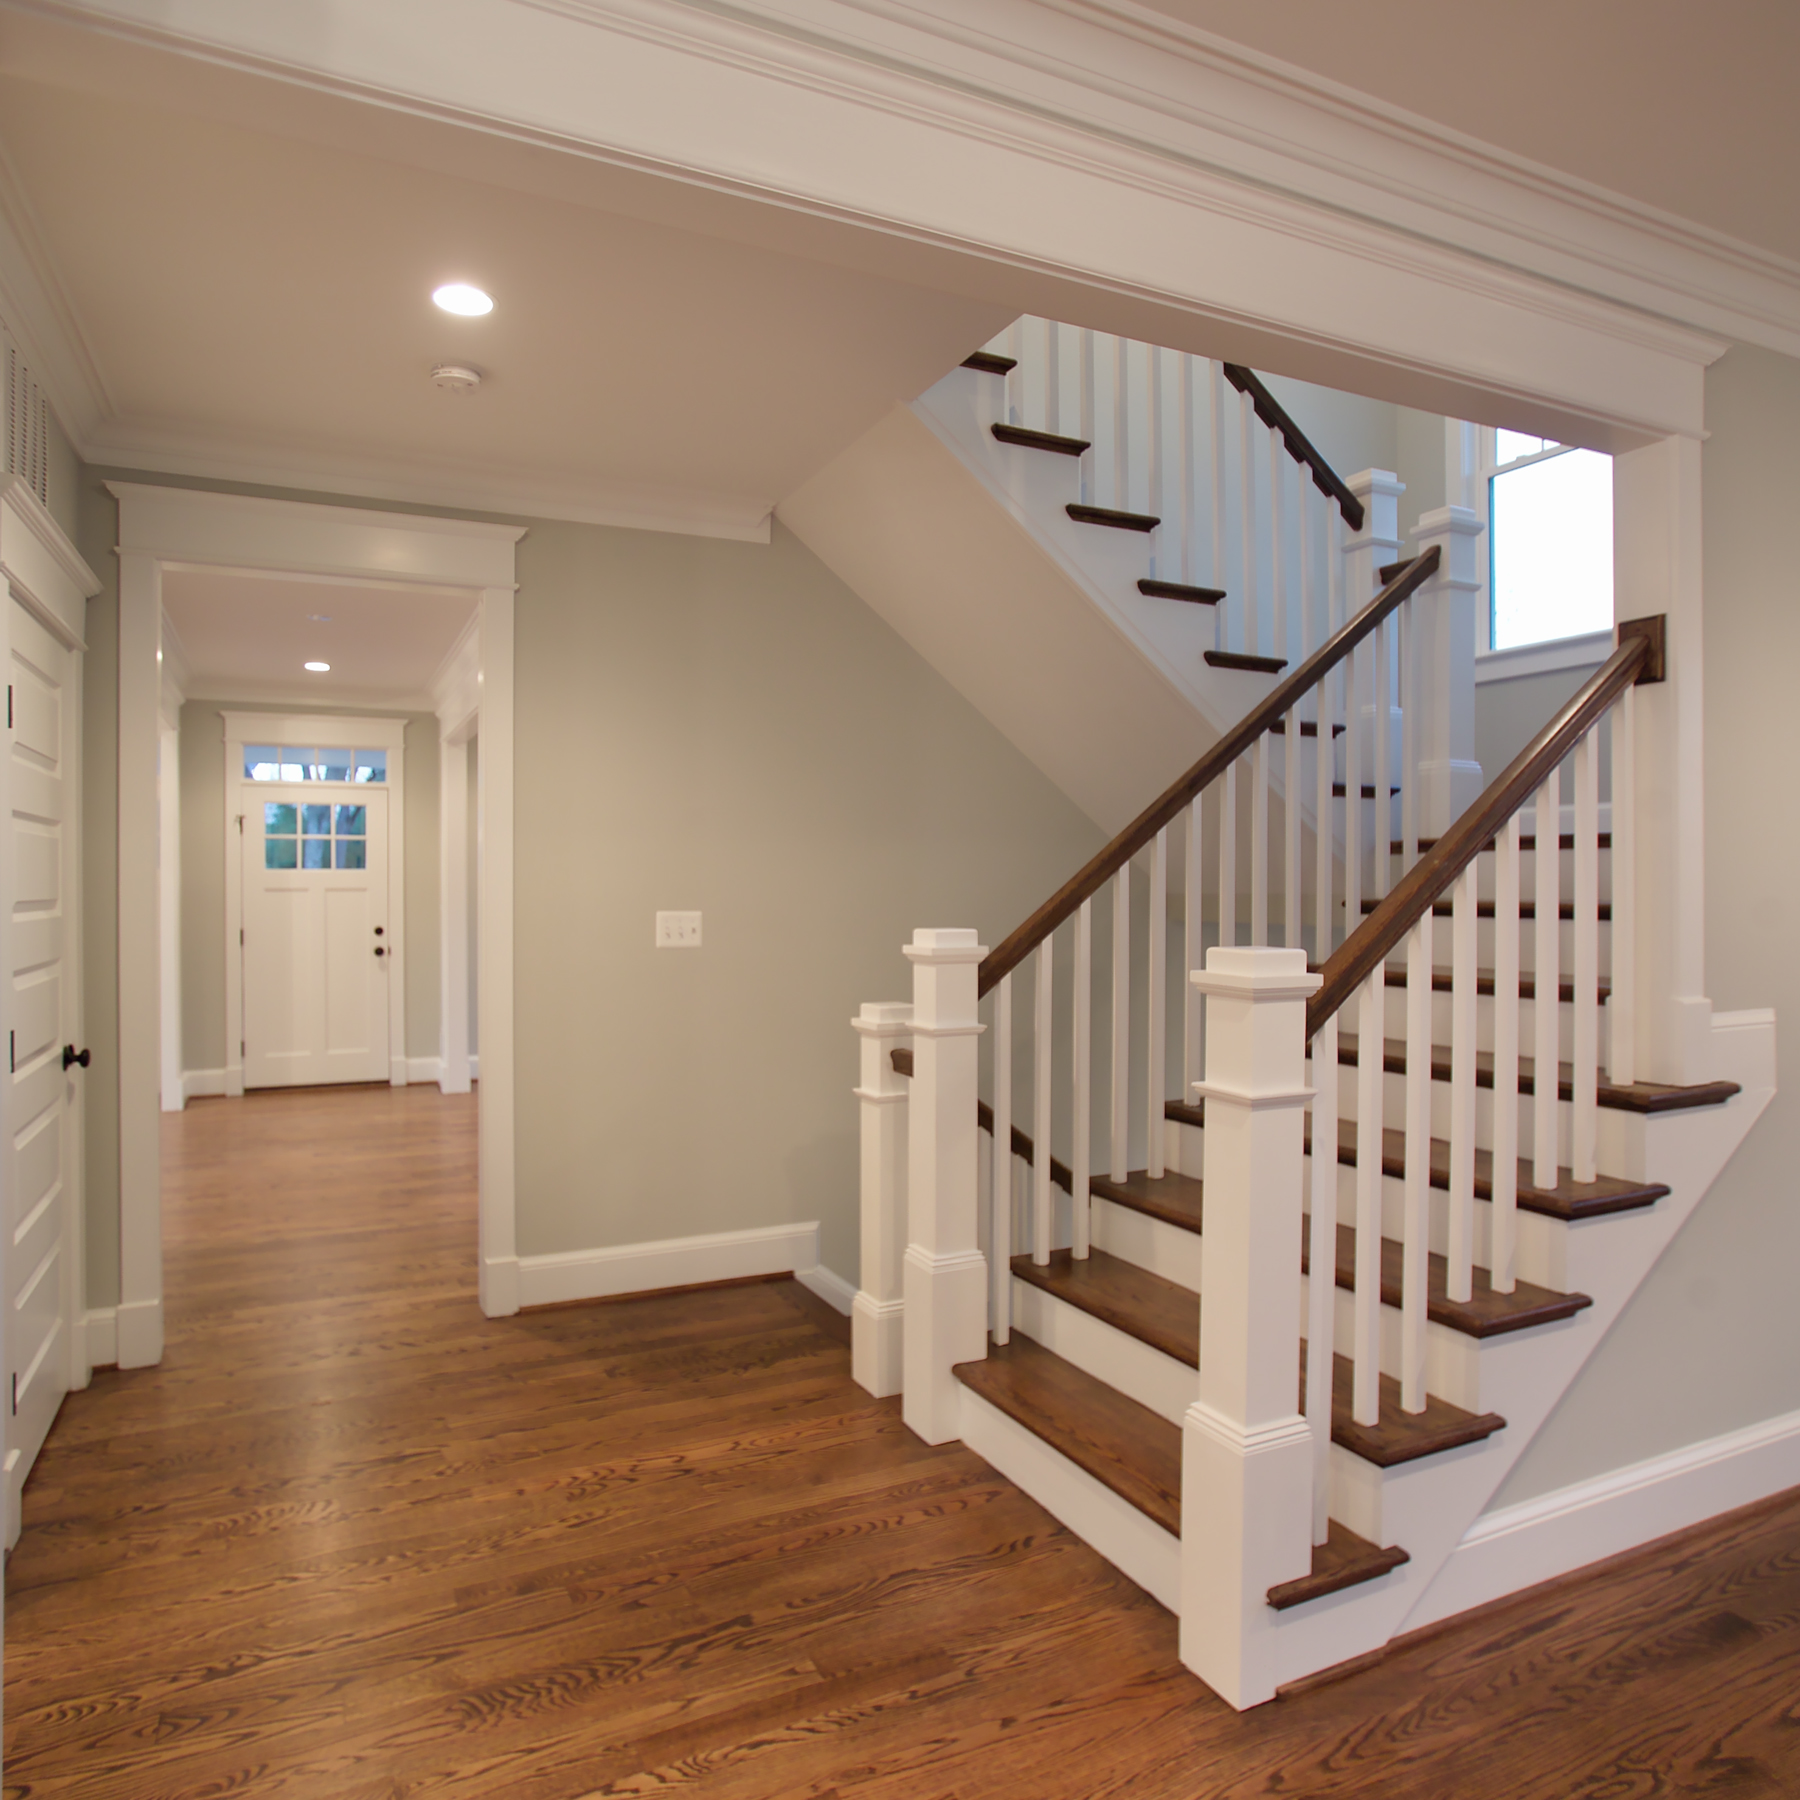 Stairs View 1 - View to Front.jpg